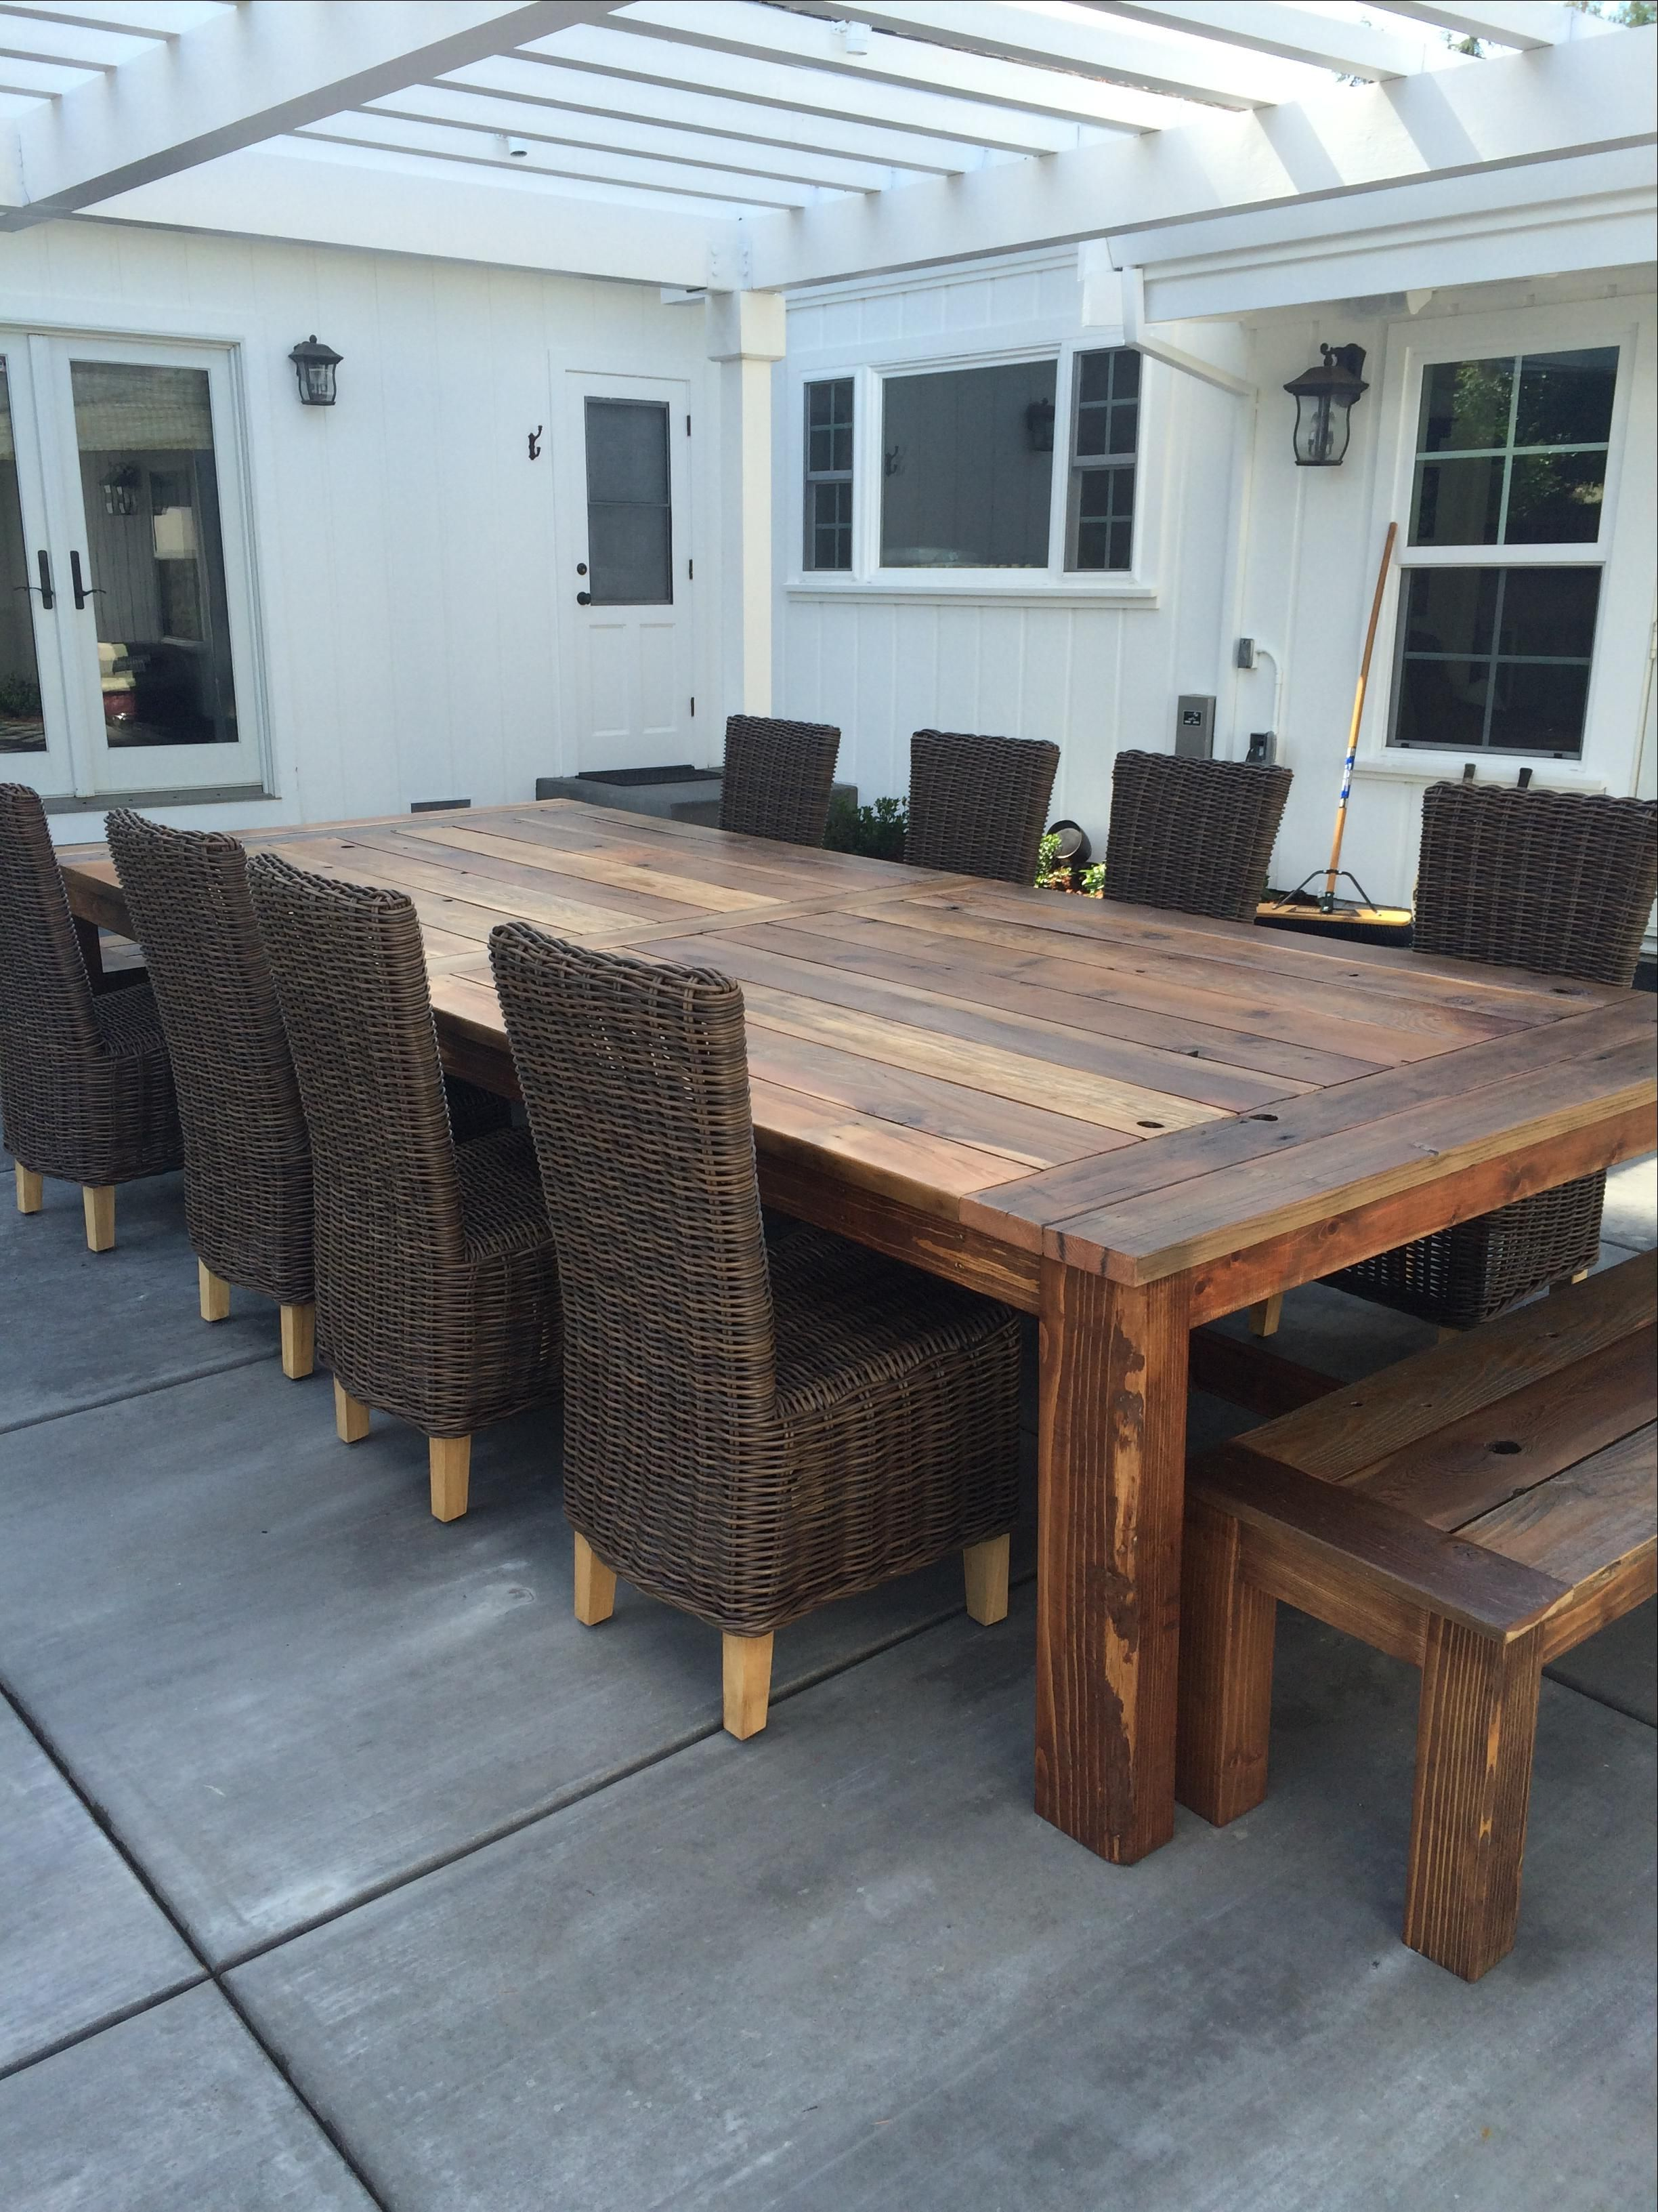 How To Waterproof Wood Furniture For Outdoors Use